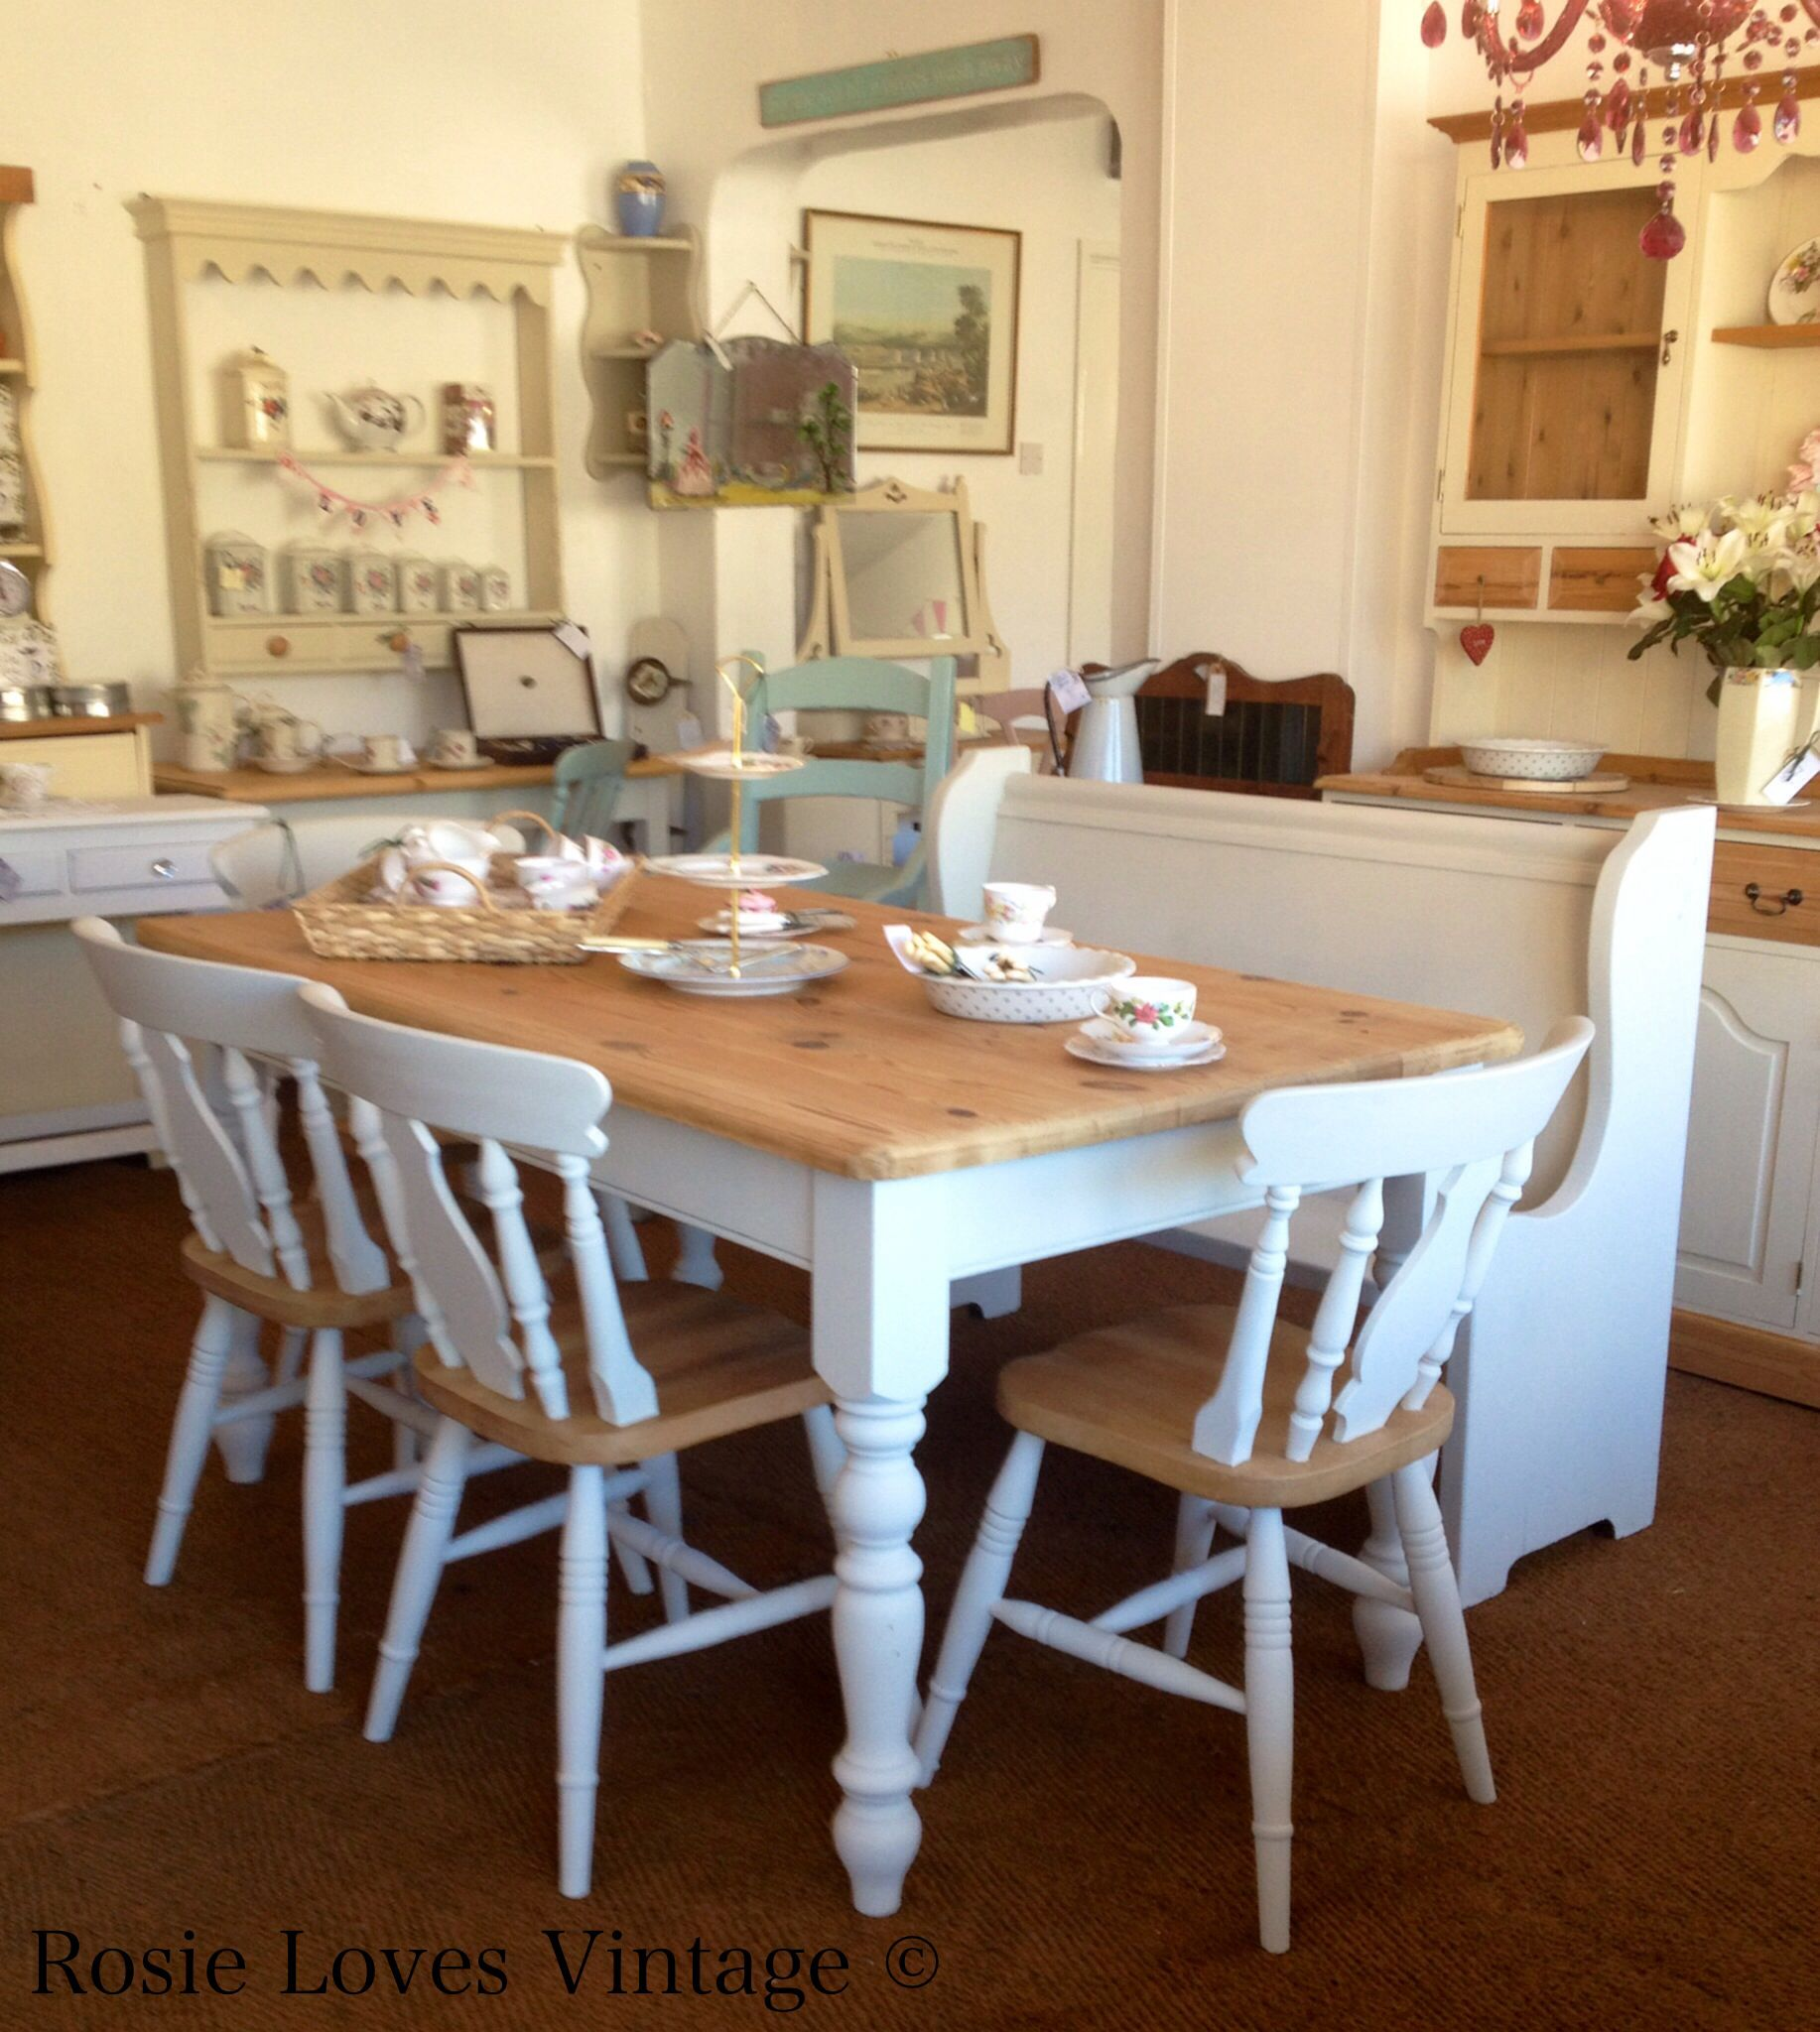 pine kitchen chairs ireland walmart desk chair rustic painted dining table and four farmhouse with